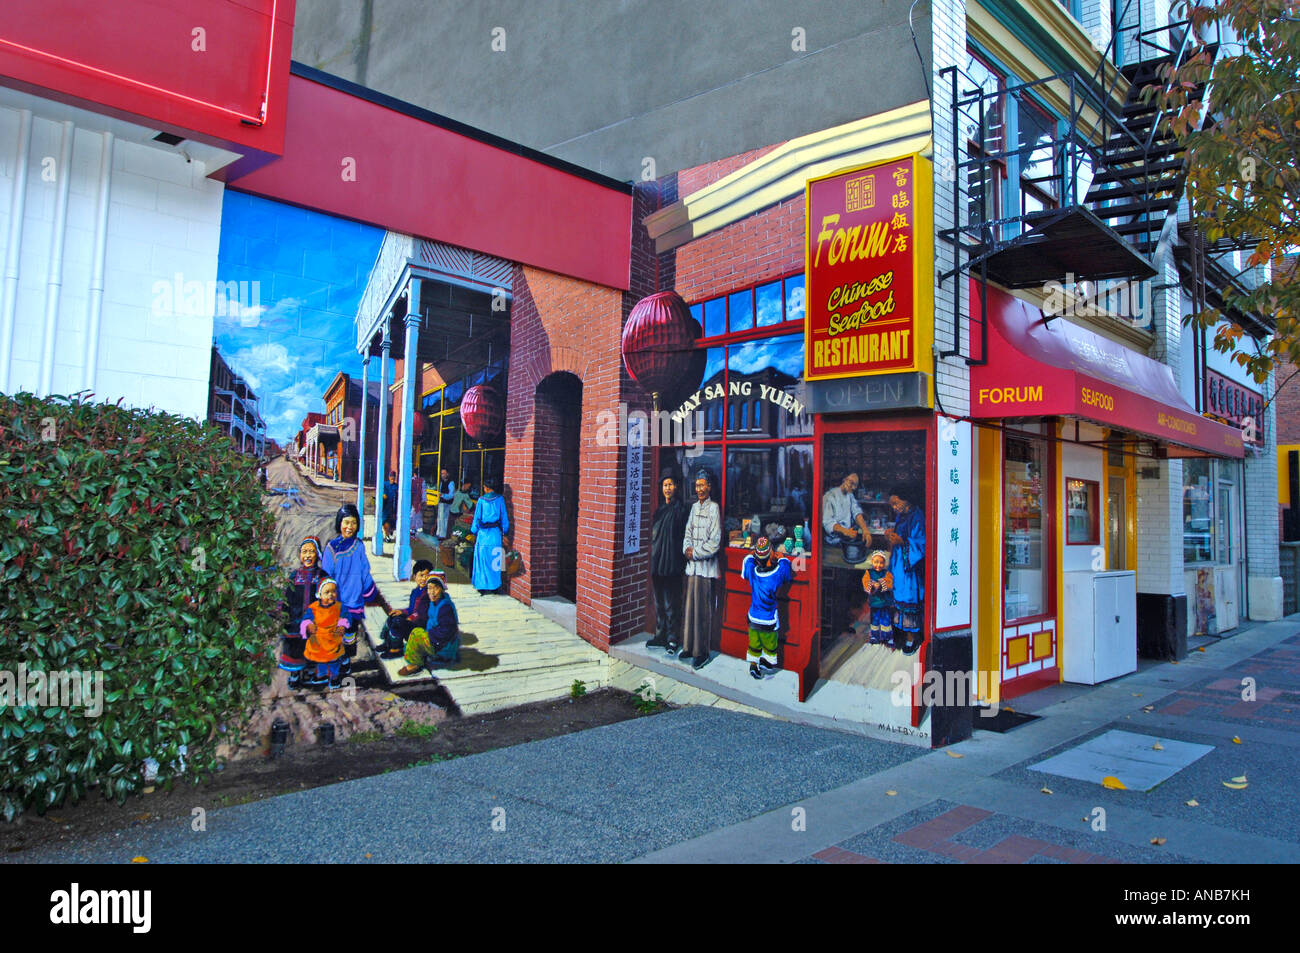 street scene wall mural painted in china town victoria capital stock photo street scene wall mural painted in china town victoria capital city british coumbia canada